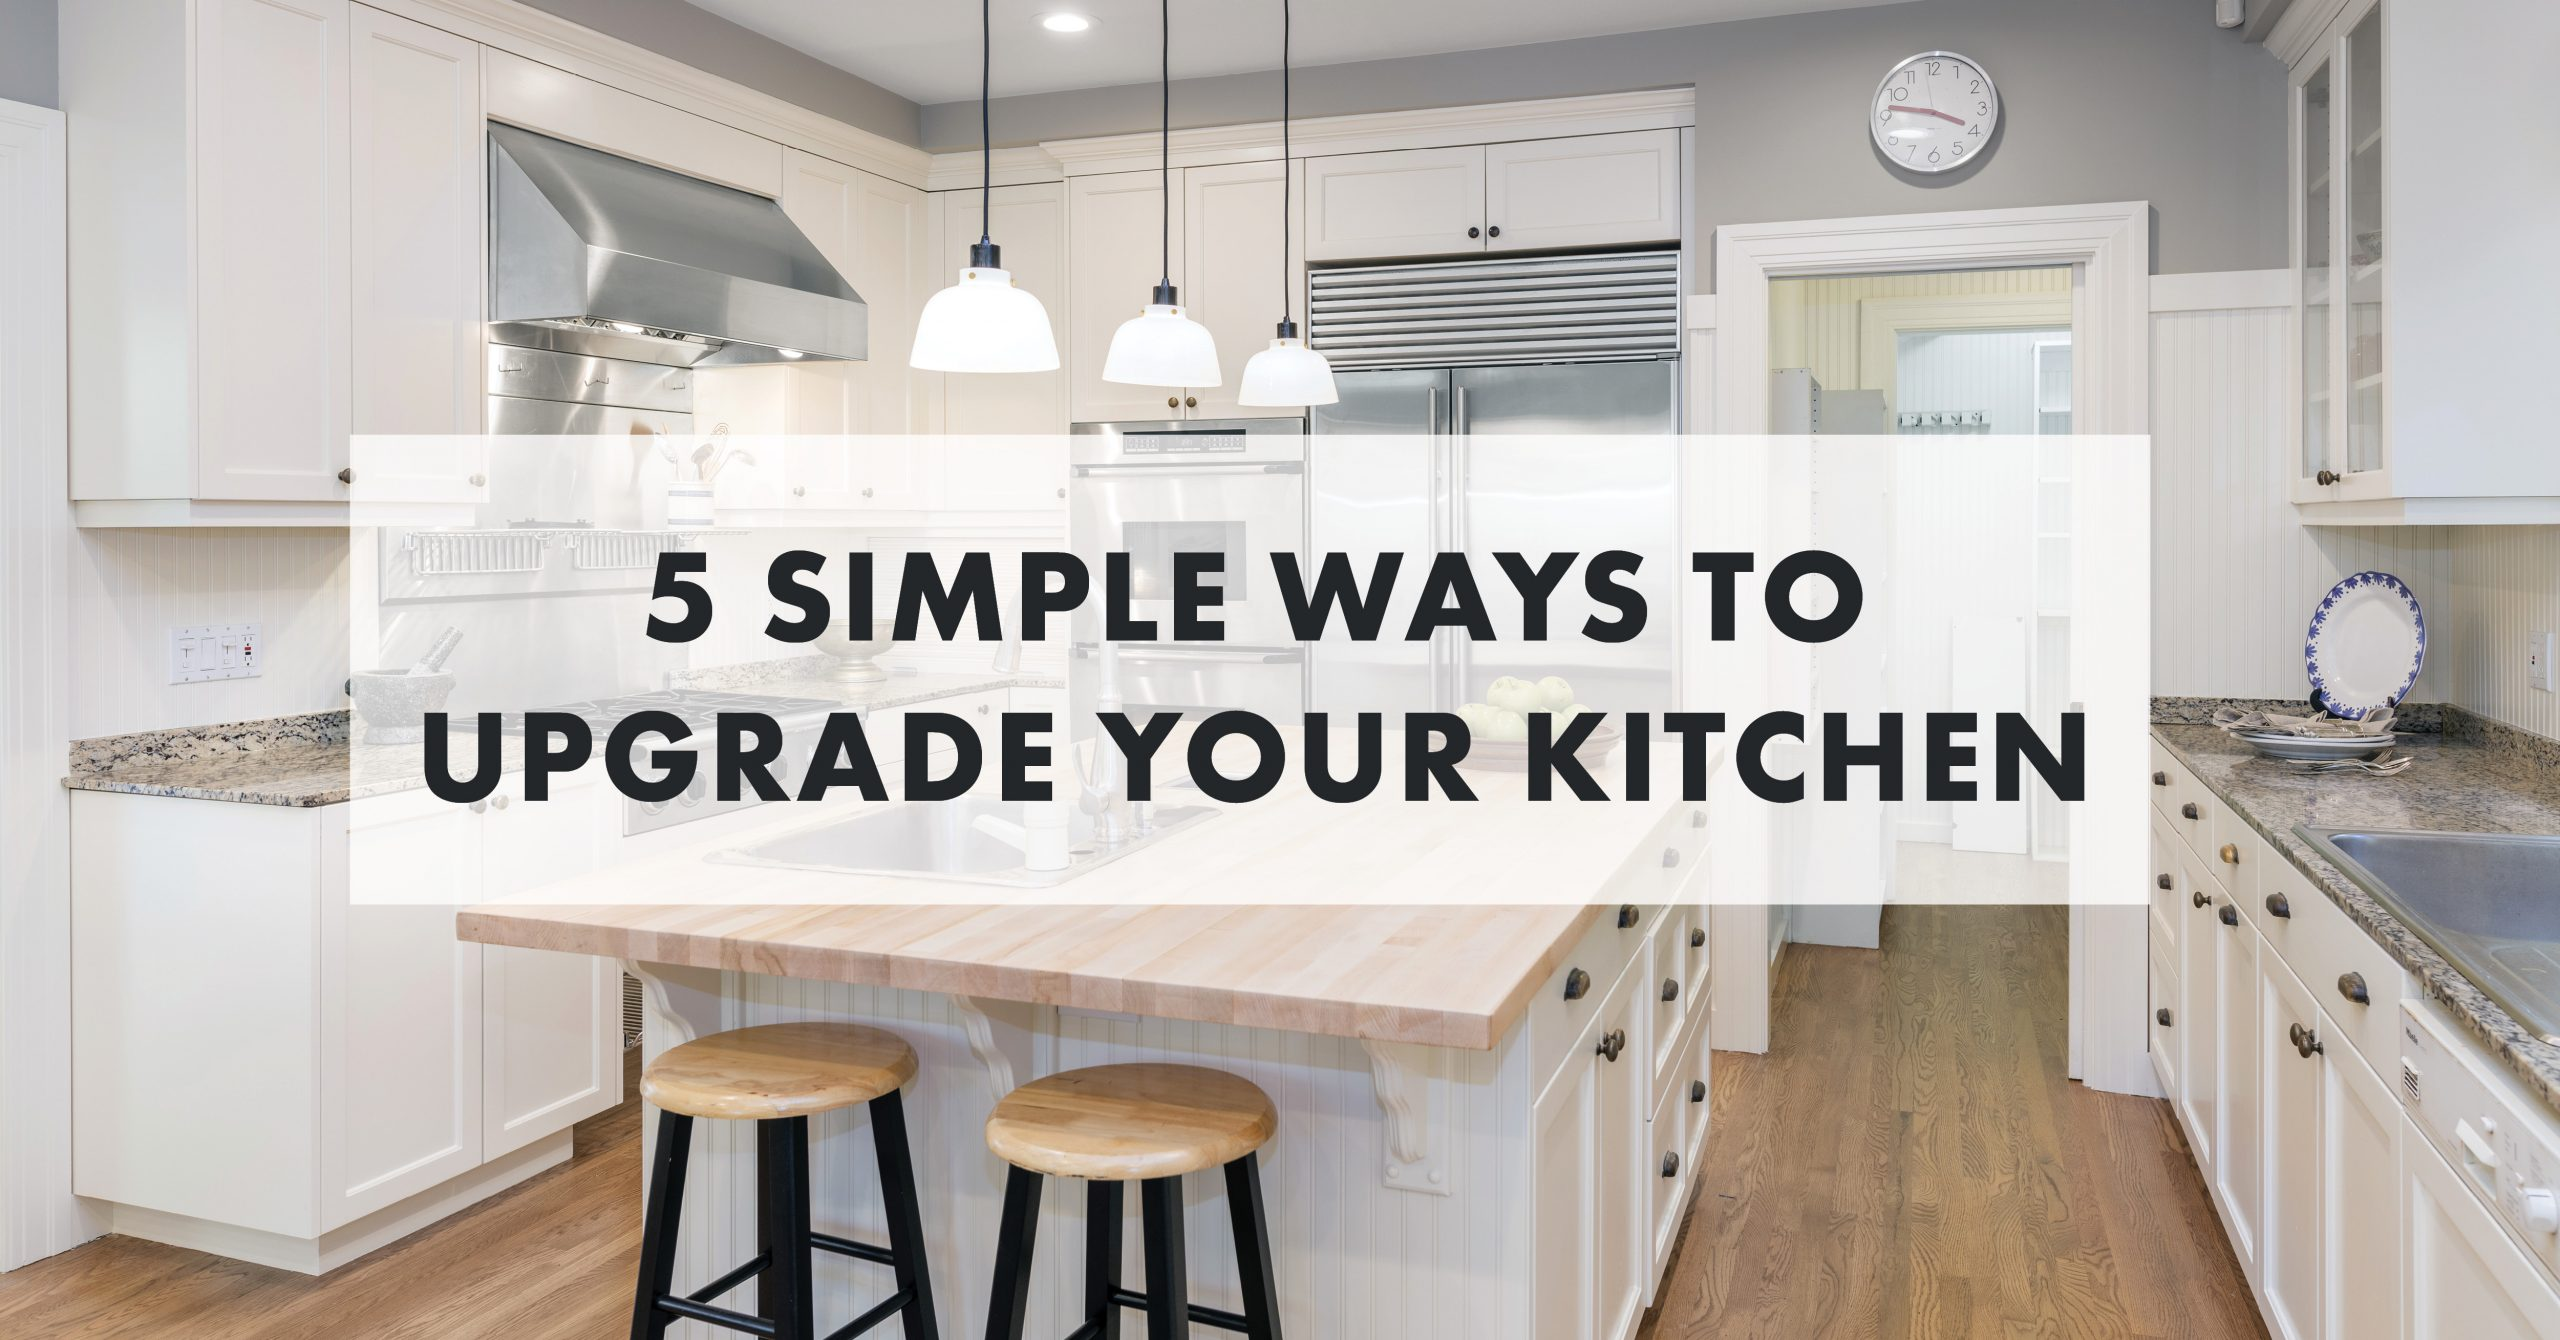 5 Simple Ways to Upgrade Your Kitchen